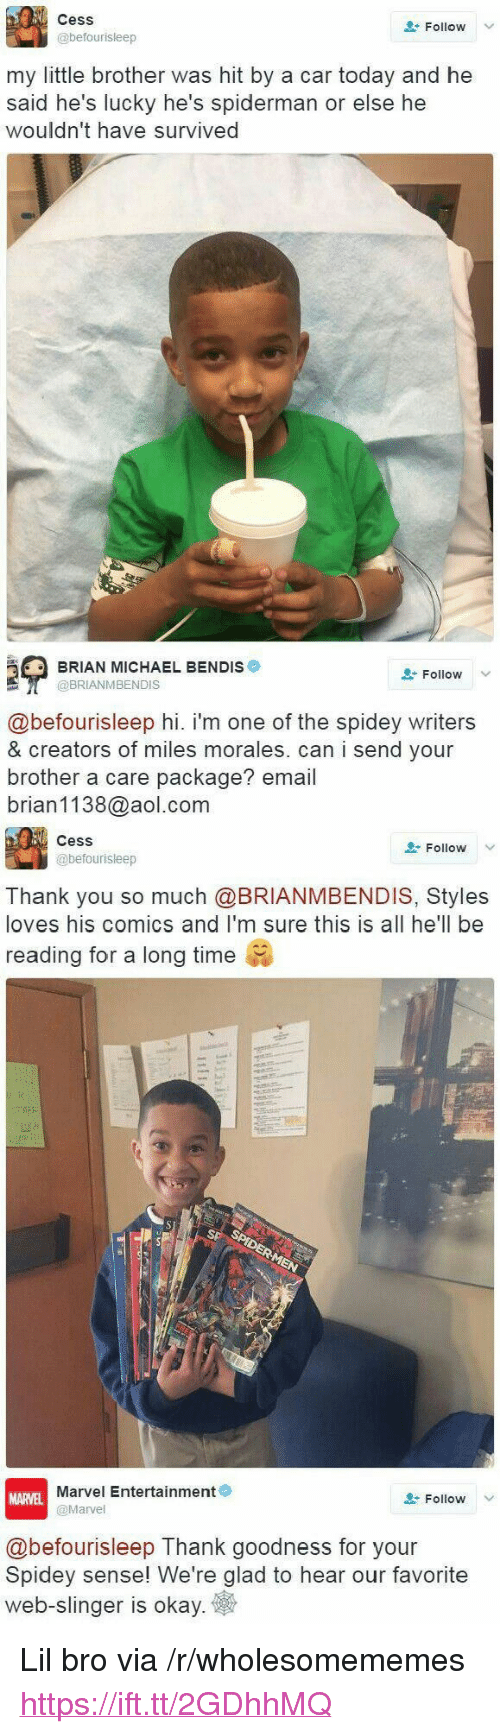 """Miles Morales: Cess  @befourisleep  Follow  my little brother was hit by a car today and he  said he's lucky he's spiderman or else he  wouldn't have survived  BRIAN MICHAEL BENDIS  @BRIANMBENDIS  Follow V  @befourisleep hi. i'm one of the spidey writers  & creators of miles morales. can i send your  brother a care package? email  brian1138@aol.com  CesS  @befourisleep  Follow  Thank you so much @BRIANMBENDIS, Styles  loves his comics and I'm sure this is all he'll be  reading for a long time  Marvel Entertainment  @Marvel  MARVEL  Follow  @befourisleep Thank goodness for your  Spidey sense! We're glad to hear our favorite  web-slinger is okay <p>Lil bro via /r/wholesomememes <a href=""""https://ift.tt/2GDhhMQ"""">https://ift.tt/2GDhhMQ</a></p>"""